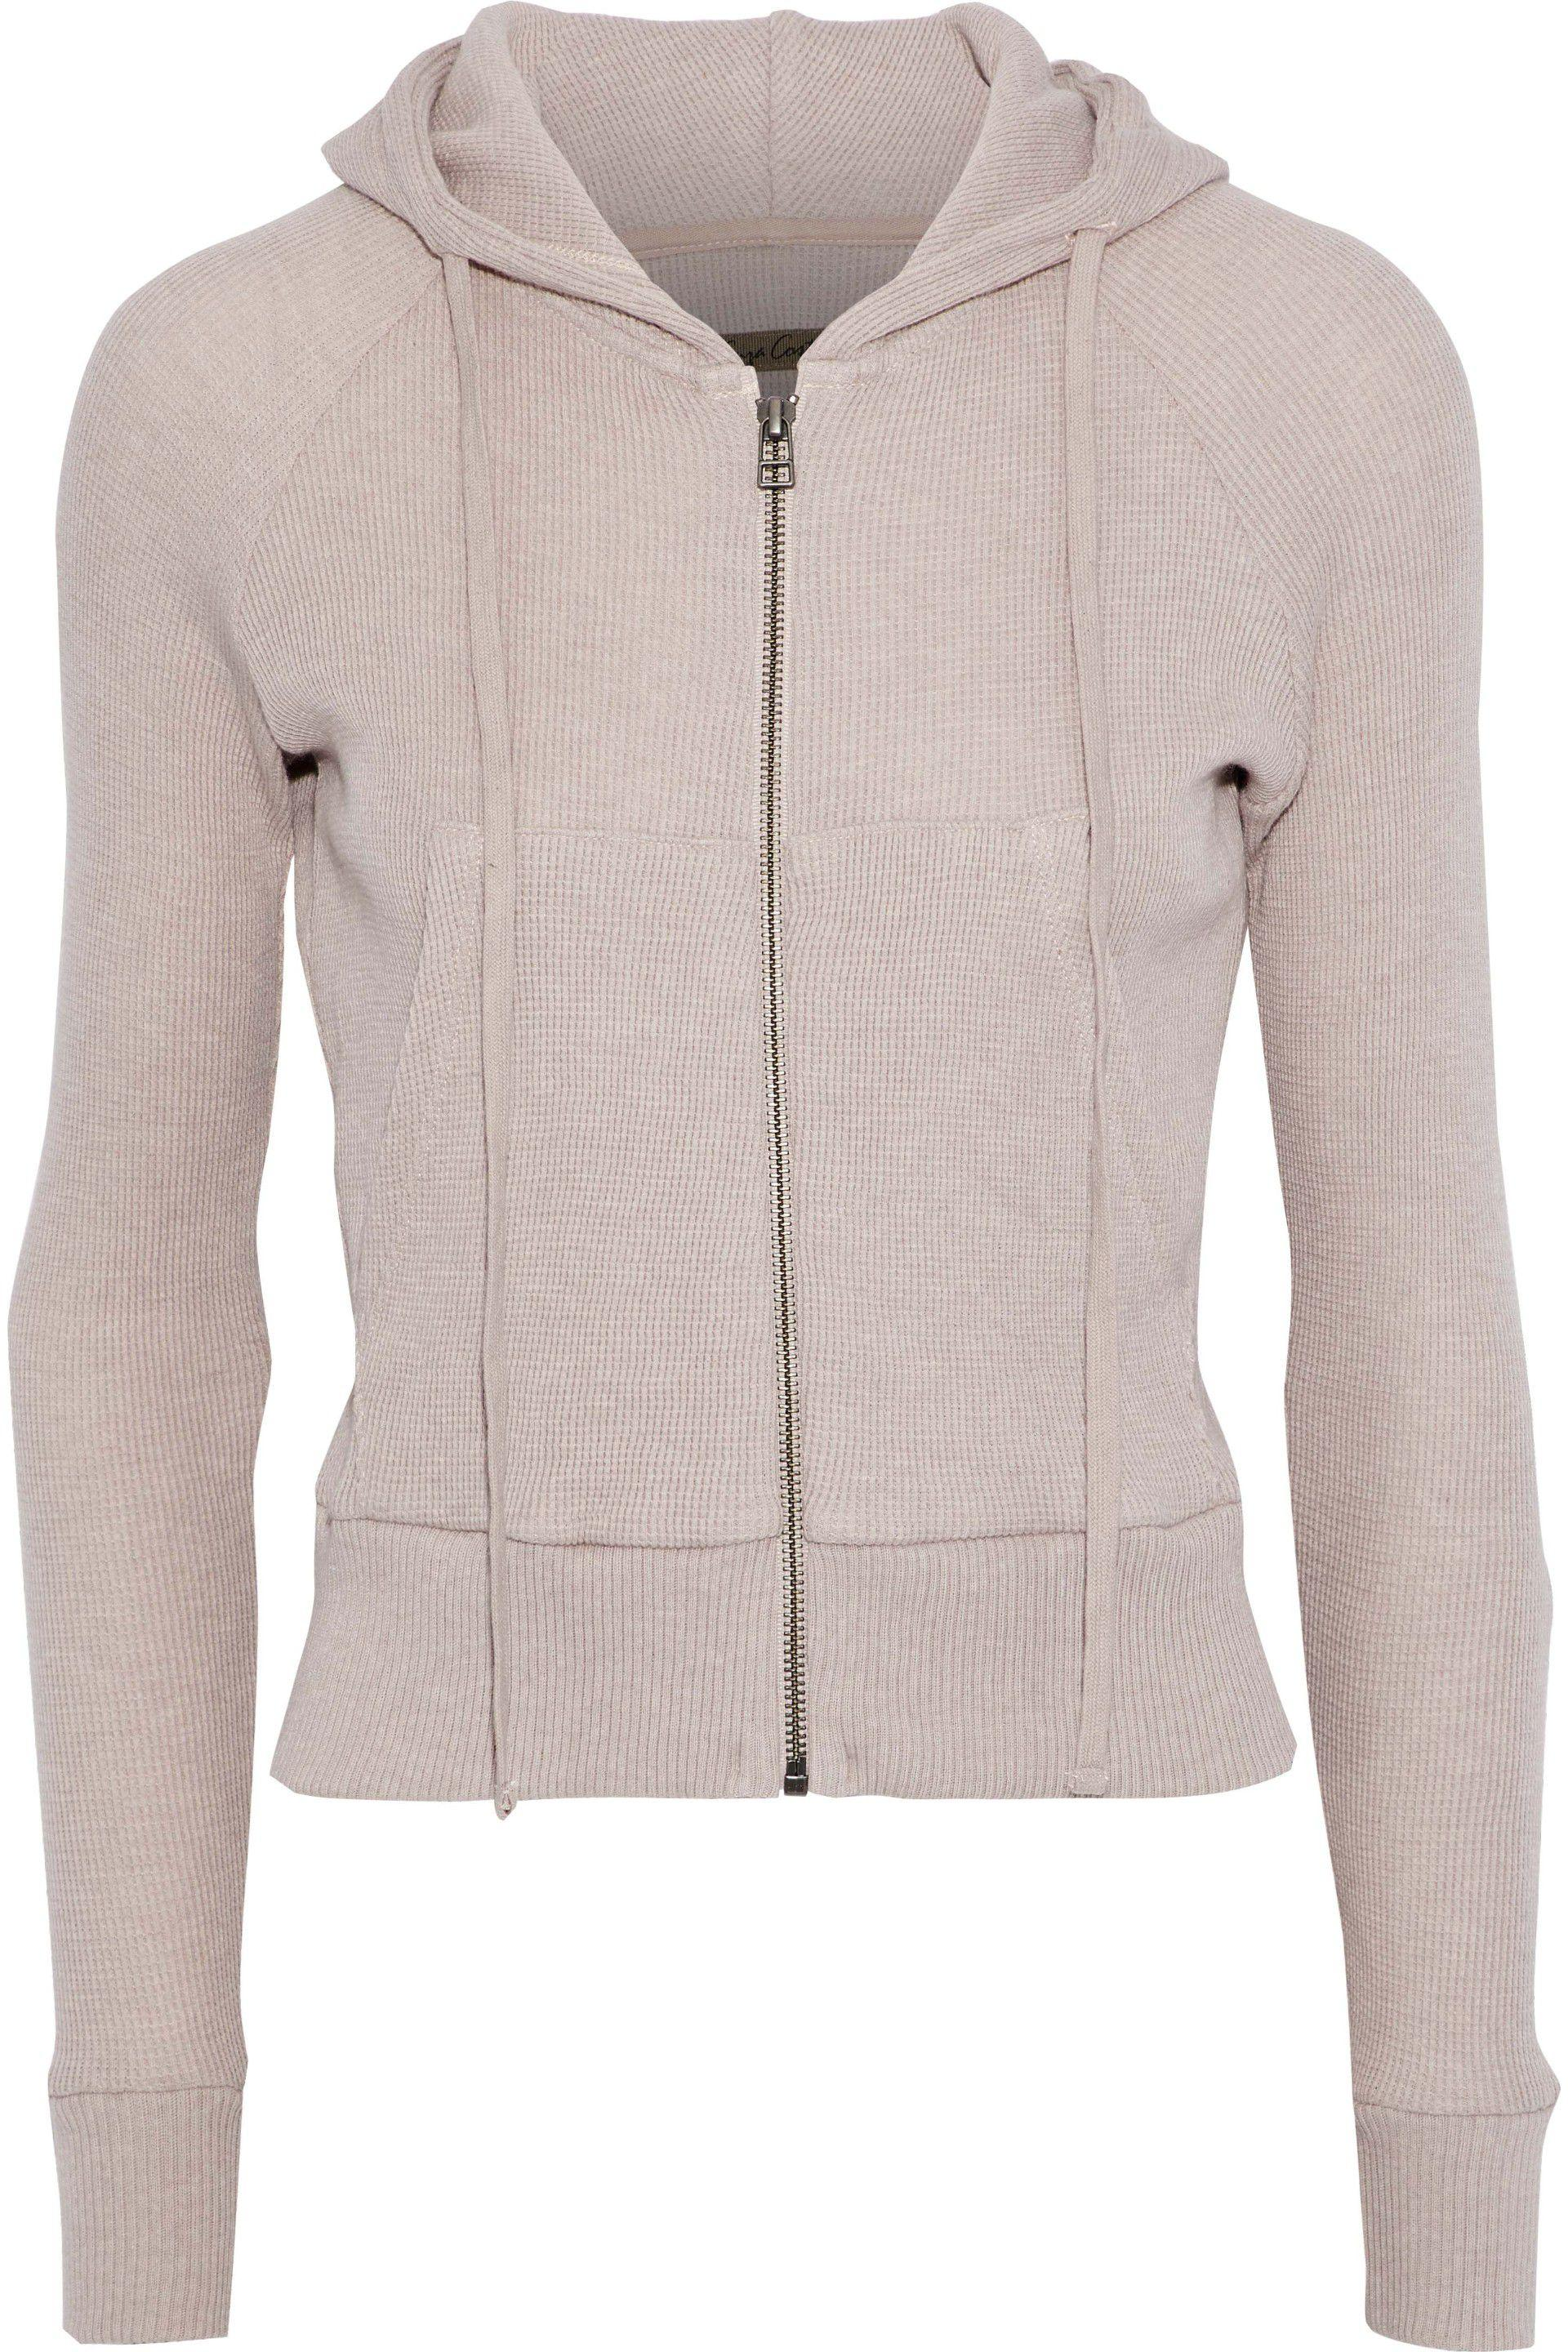 Lyst - Enza Costa Woman Waffle-knit Cotton And Cashmere-blend Hoodie ... 7e68e3930